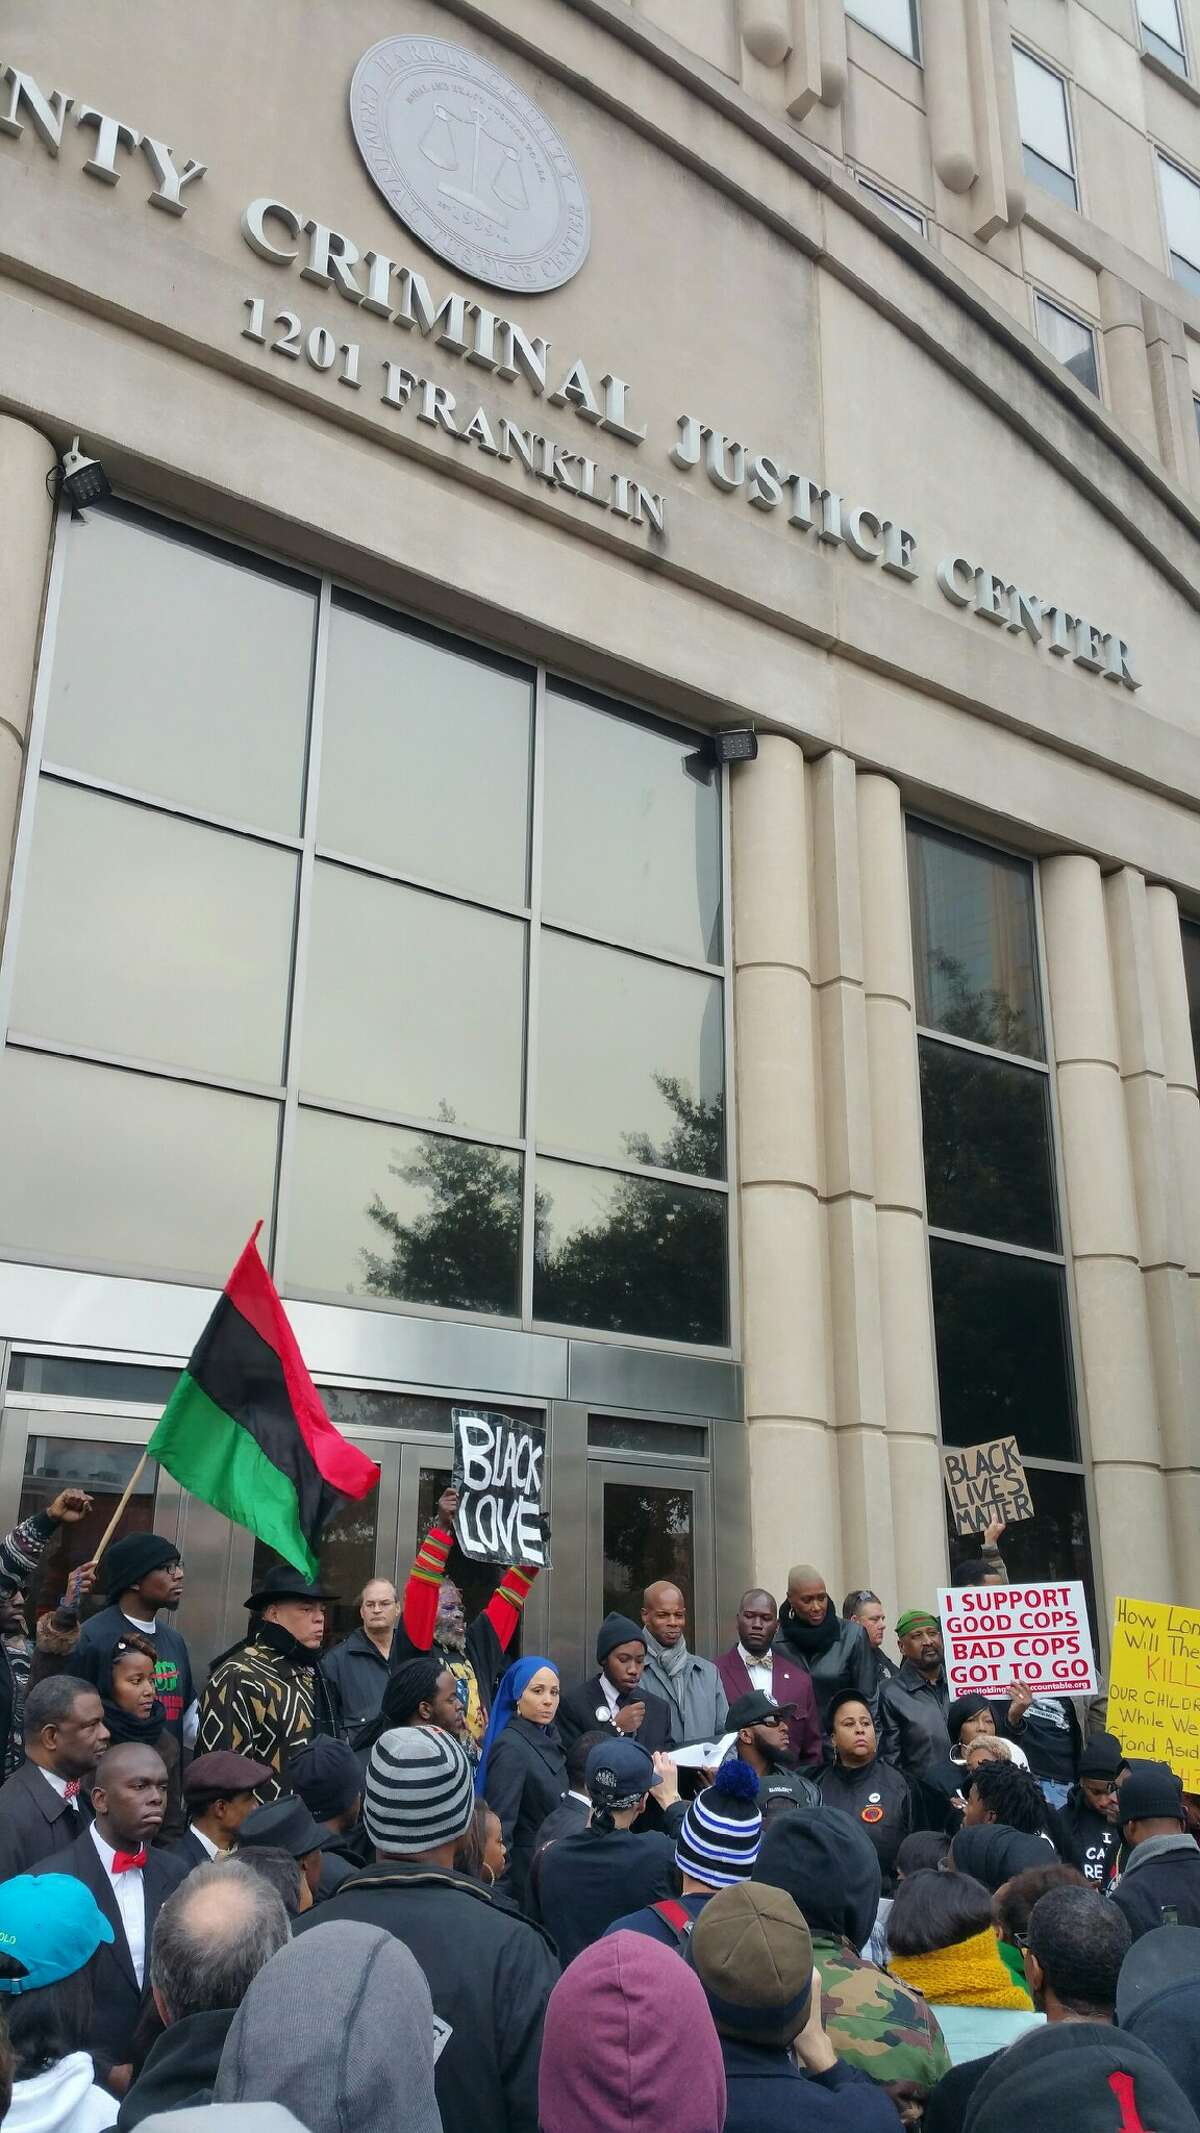 Protesters in Houston took to the streets, Monday, Dec. 29, 2014, to voice their opposition to a grand jury's decision not to indict an officer in the death of Jordan Baker.